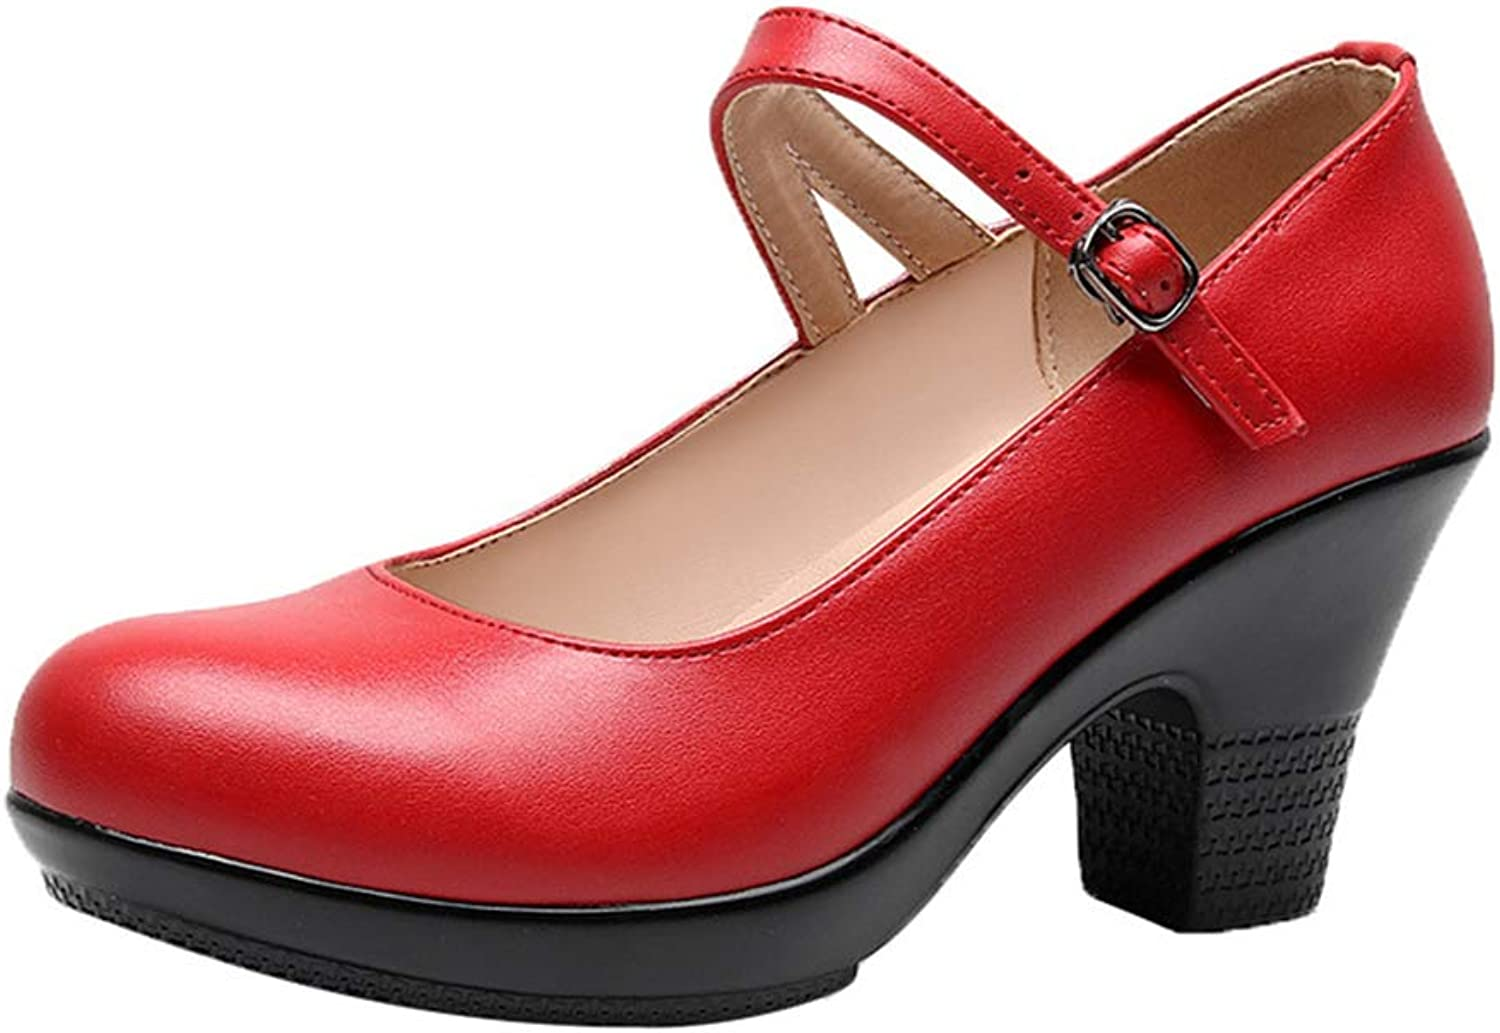 Women's Fashion shoes Spring & Fall Lady's Chunky Heels One-Button Buckle Cheongsam Catwalk shoes Mother shoes Work shoes (color   Red, Size   41)